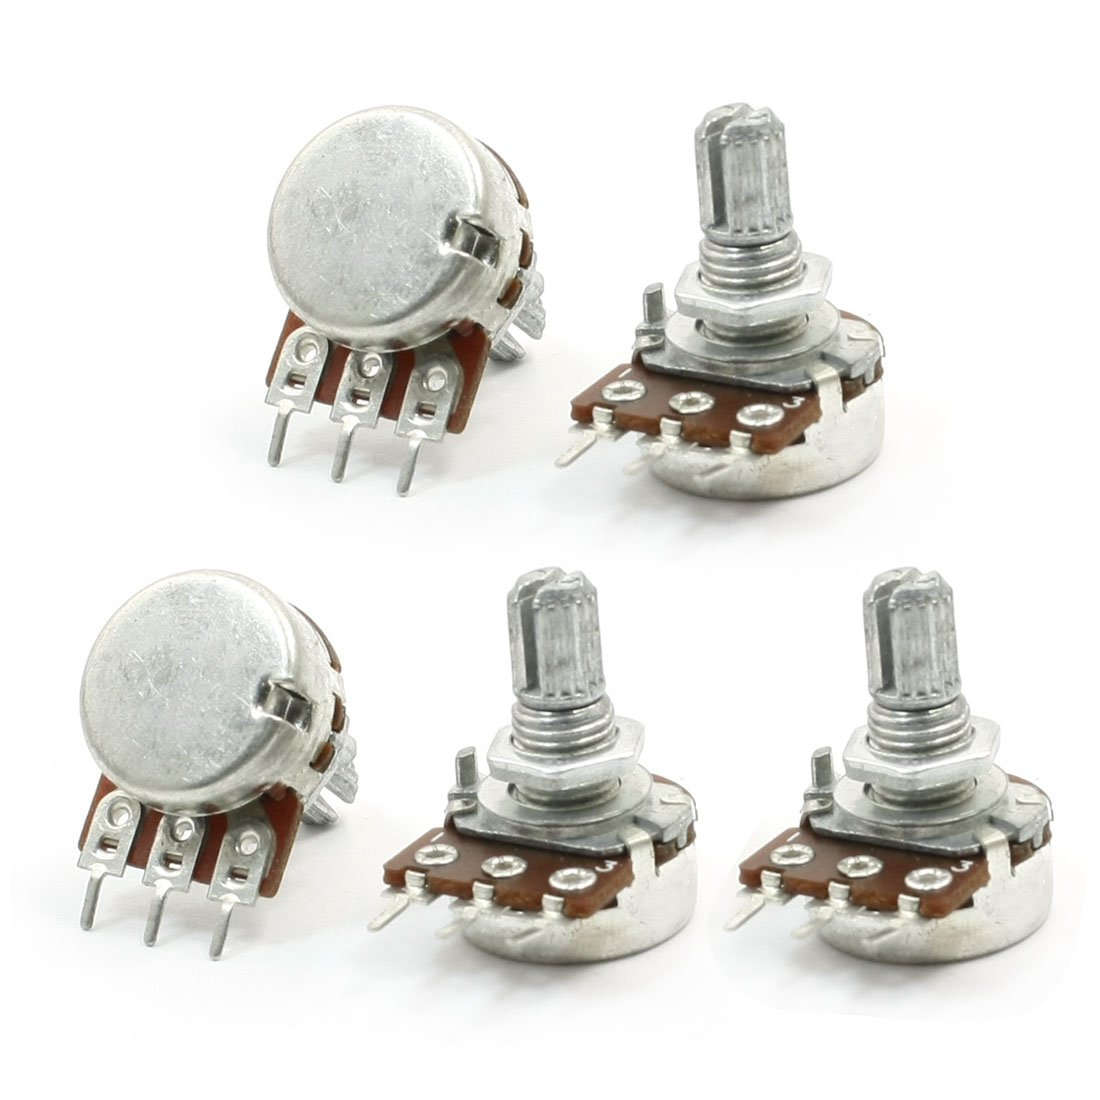 Silver 5-Piece Sourcingmap 6 mm 5 kOhm Shaft Type B Single Turn Taper Rotary Potentiometer